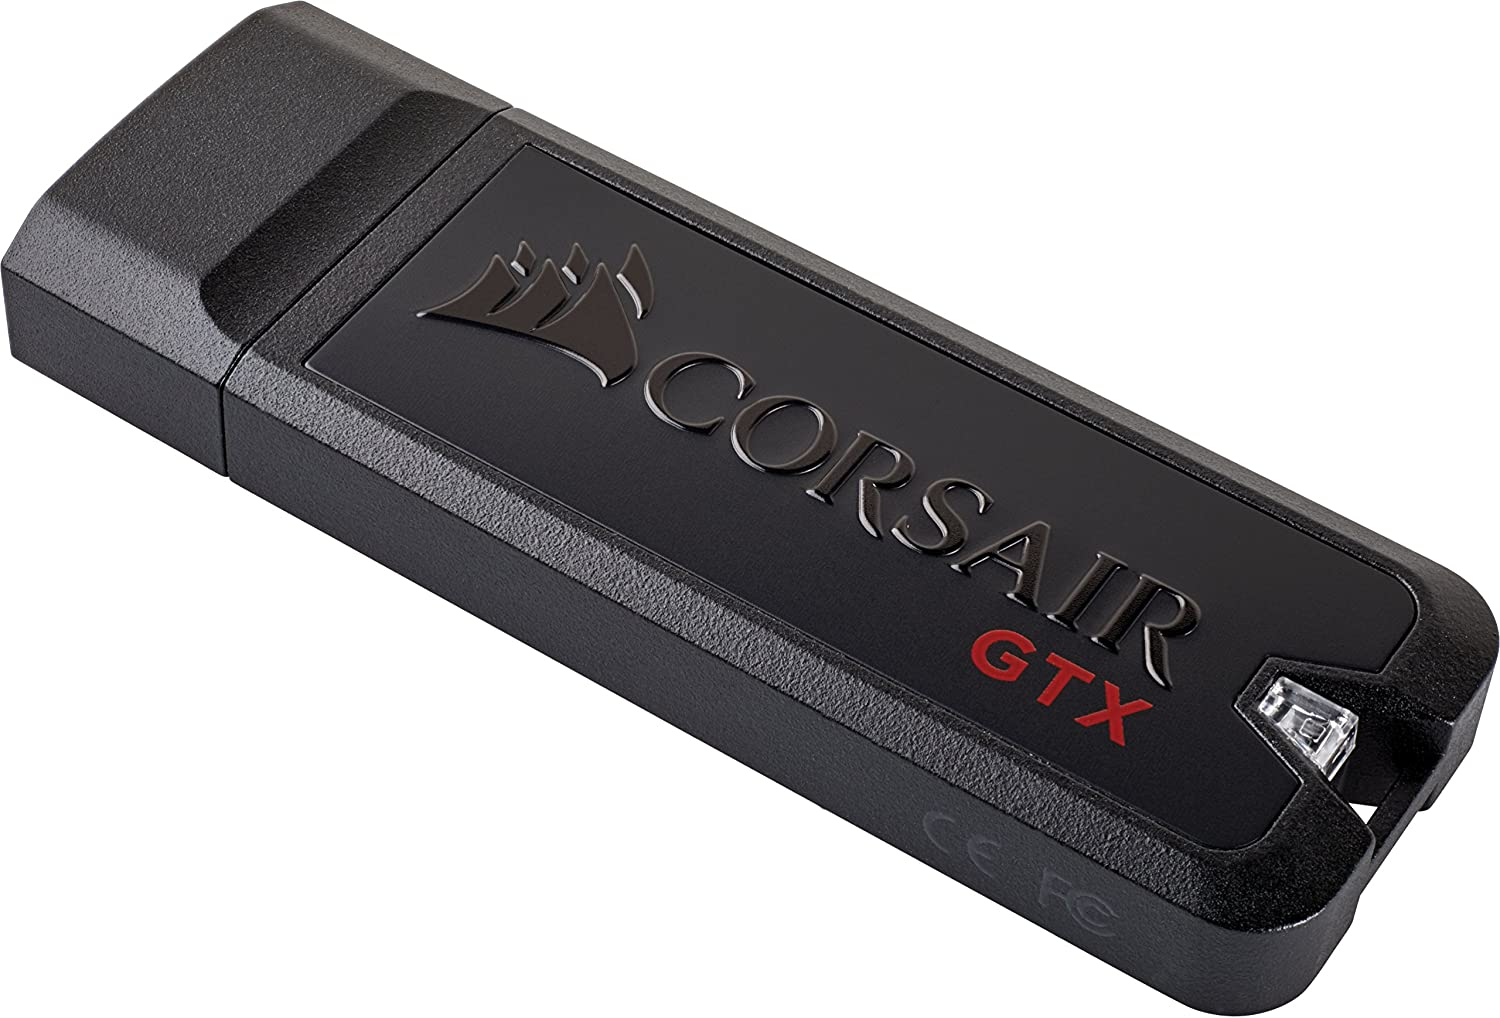 corsair best usb flash drive for 4k video techswifty